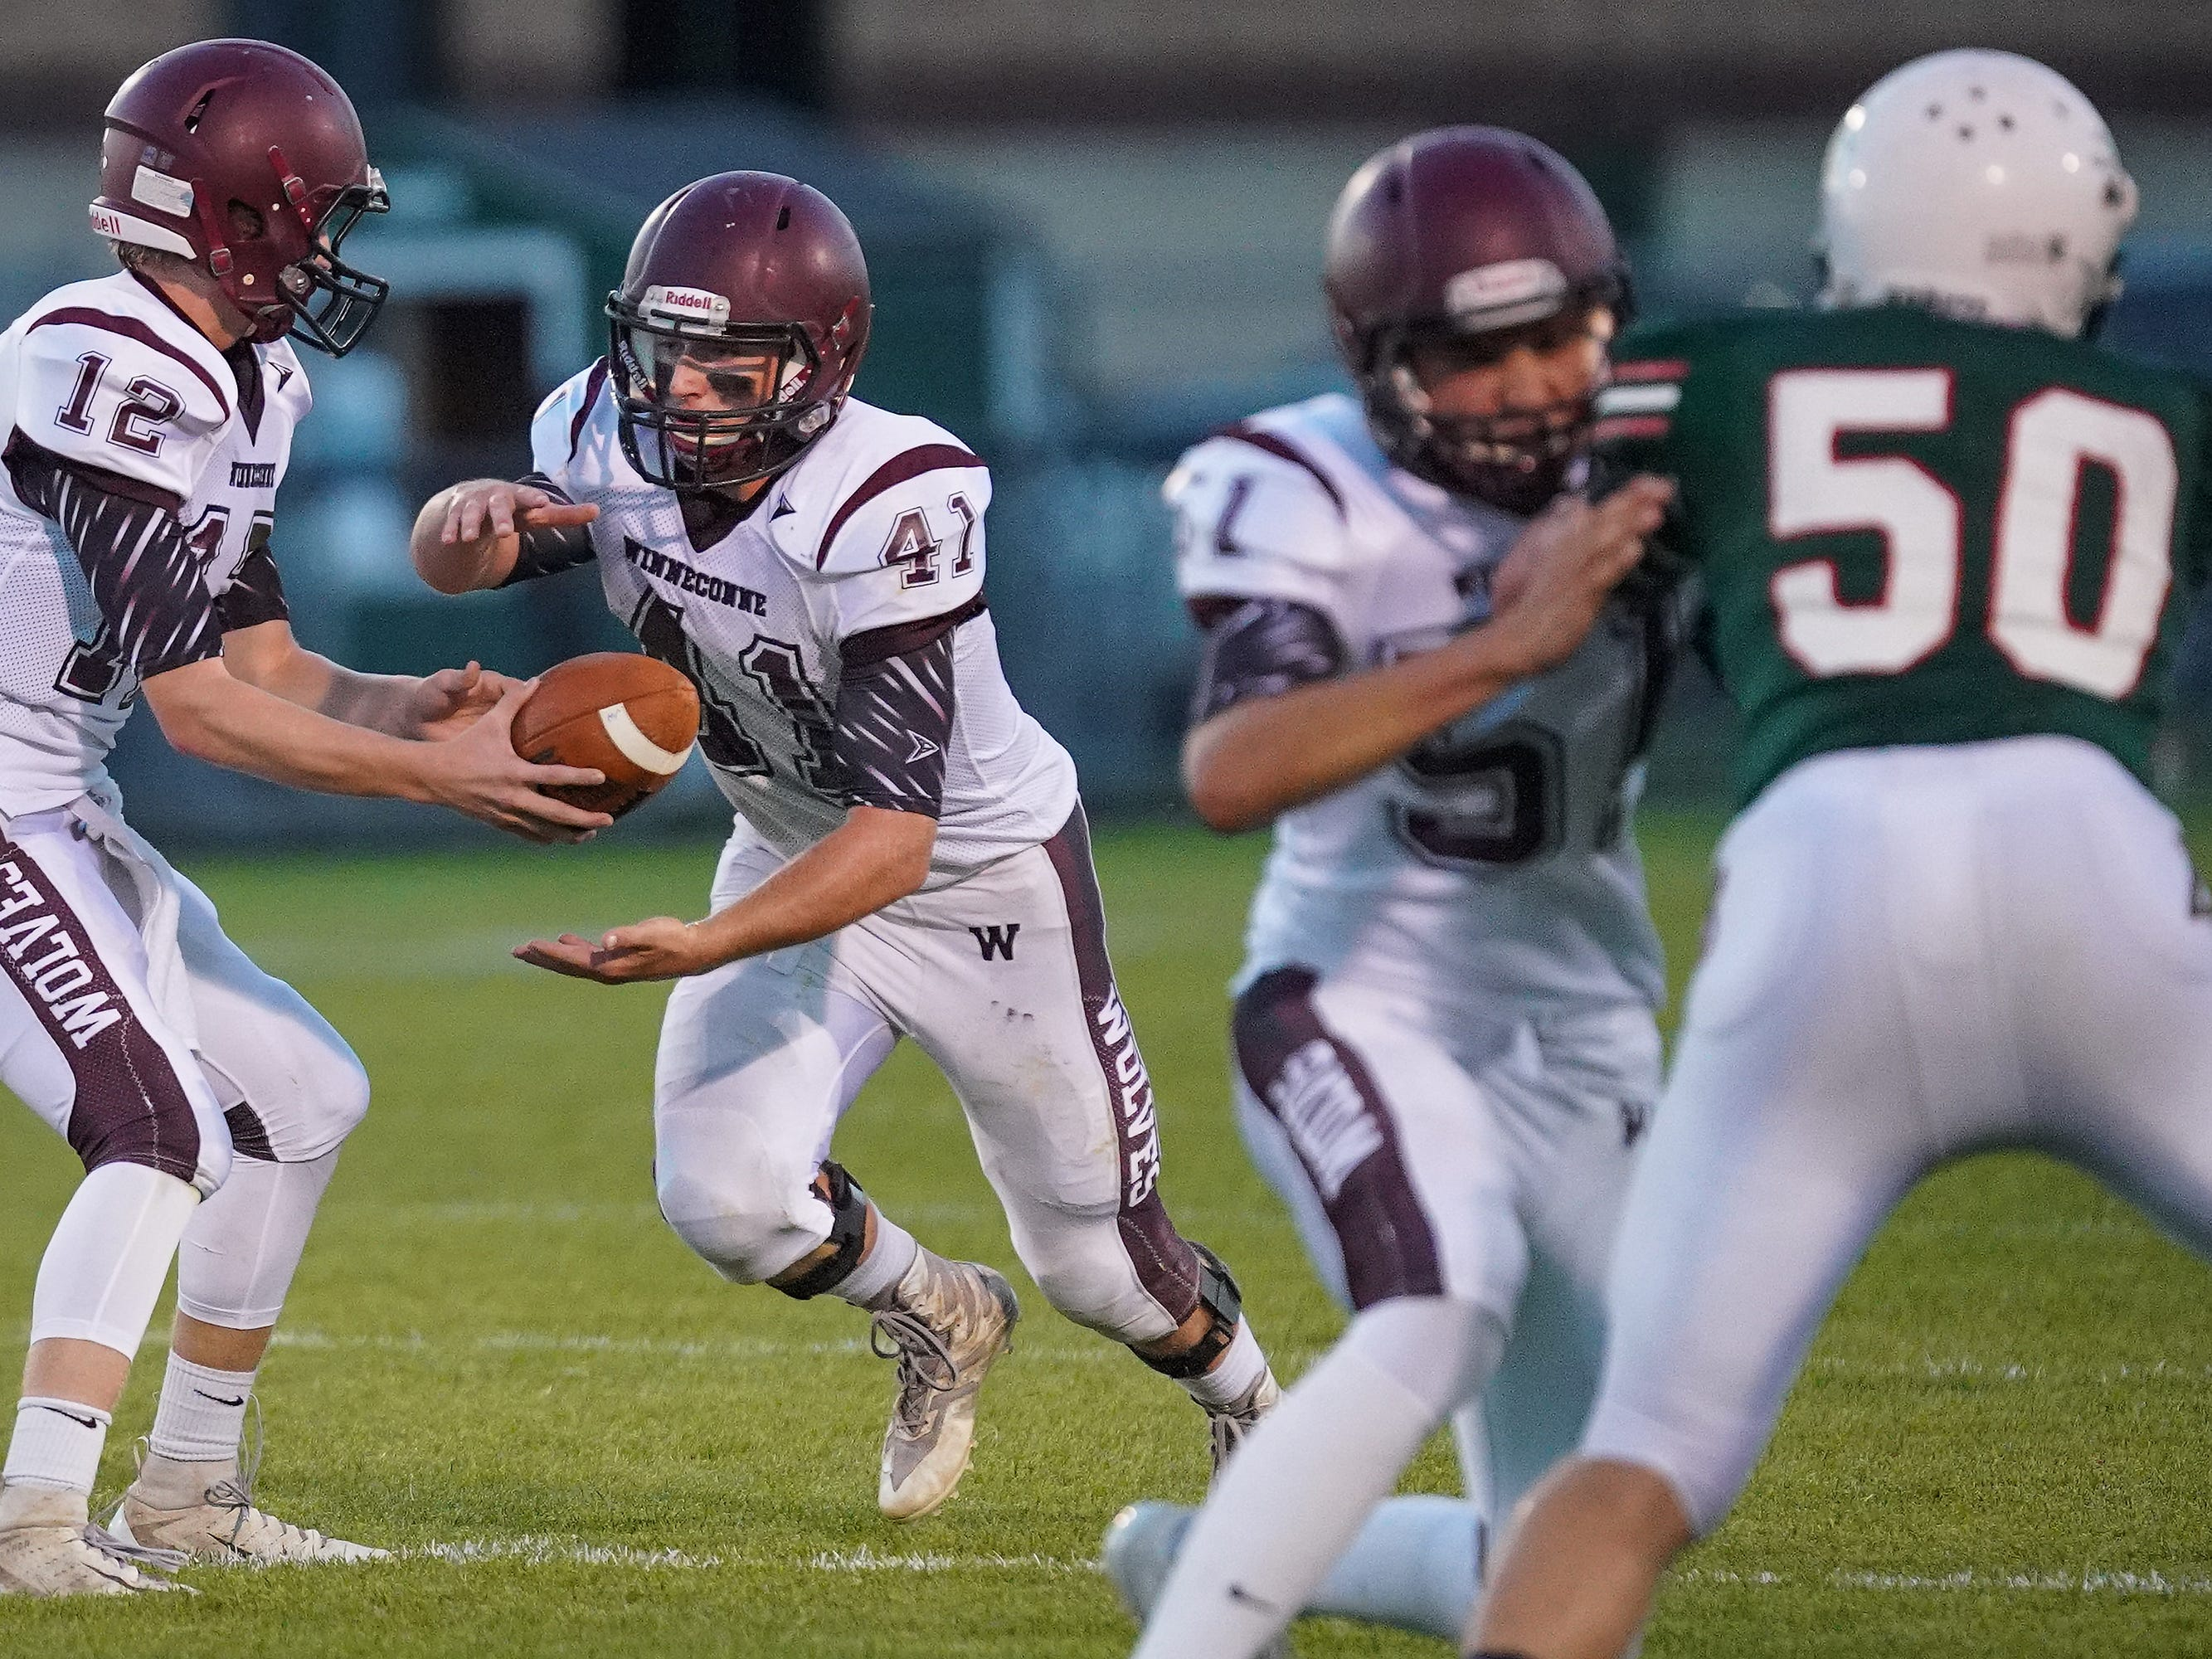 Wyatt Busching (41) of Winneconne takes the hand off from quarterback Harrison Roubidoux (12) in the first quarter. The Berlin Indians hosted the Winneconne Wolves in an East Central Conference matchup Friday evening, September 14, 2018.